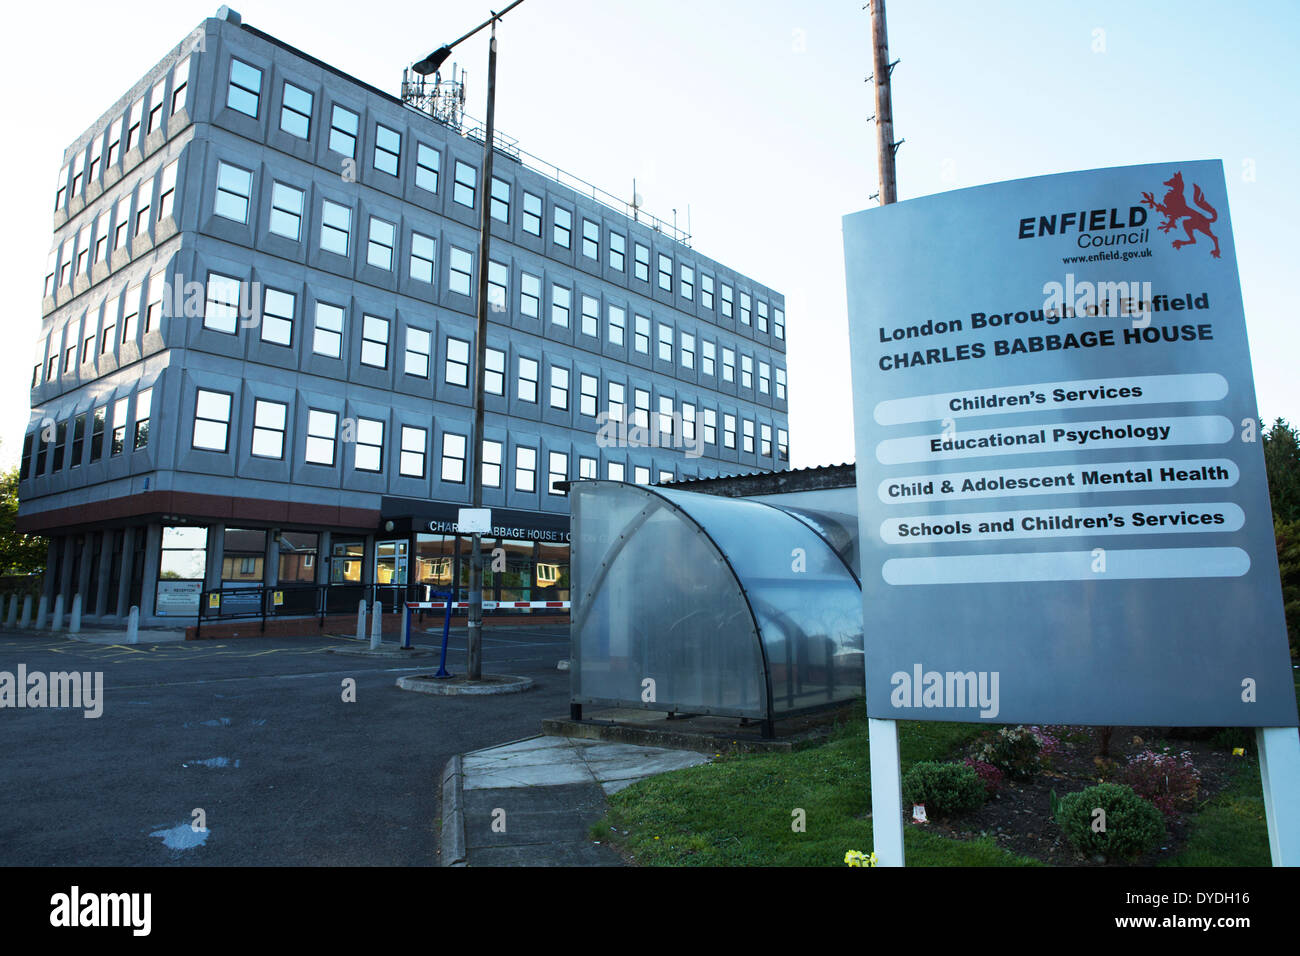 Enfield Council building / Offices, Charles Babbage House, London Borough of Enfield, England, UK - Stock Image